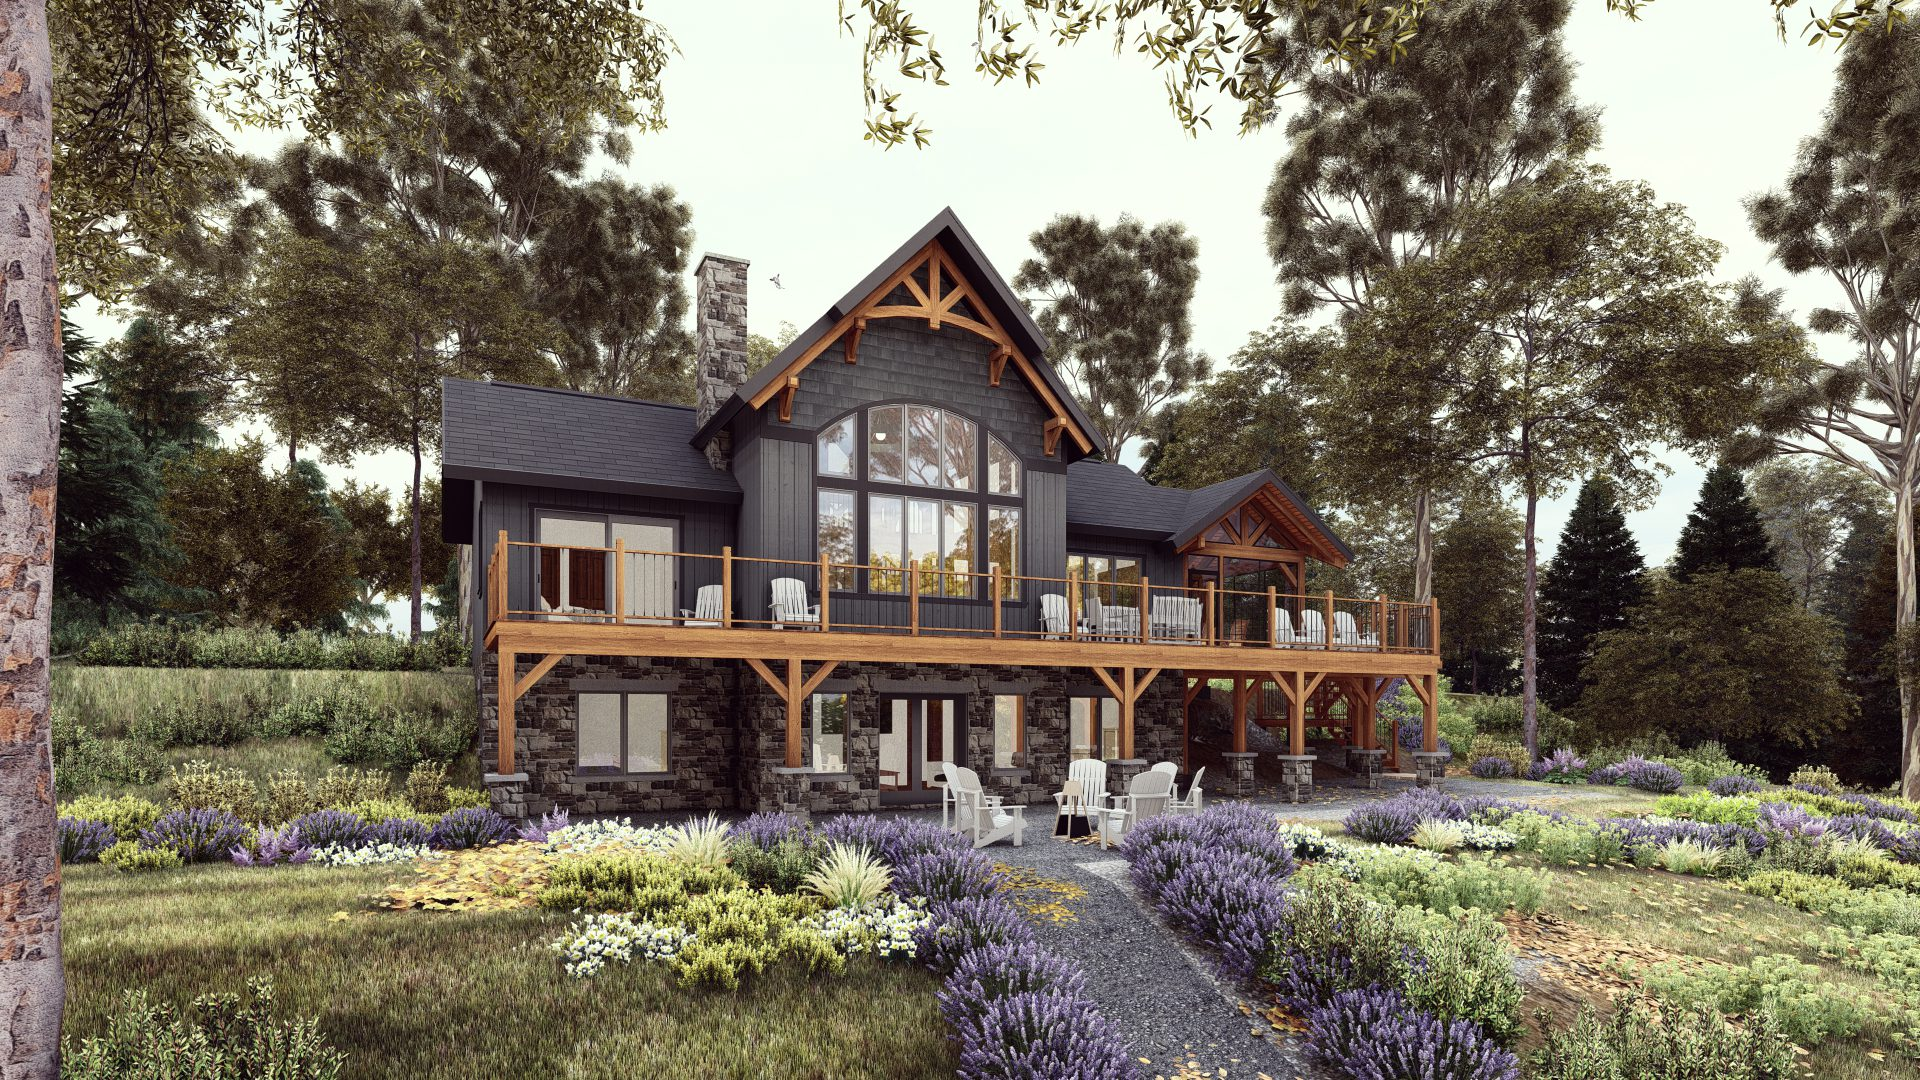 Normerica Timber Frames, House Plans, The Tobermory 3949, Exterior, Back 2